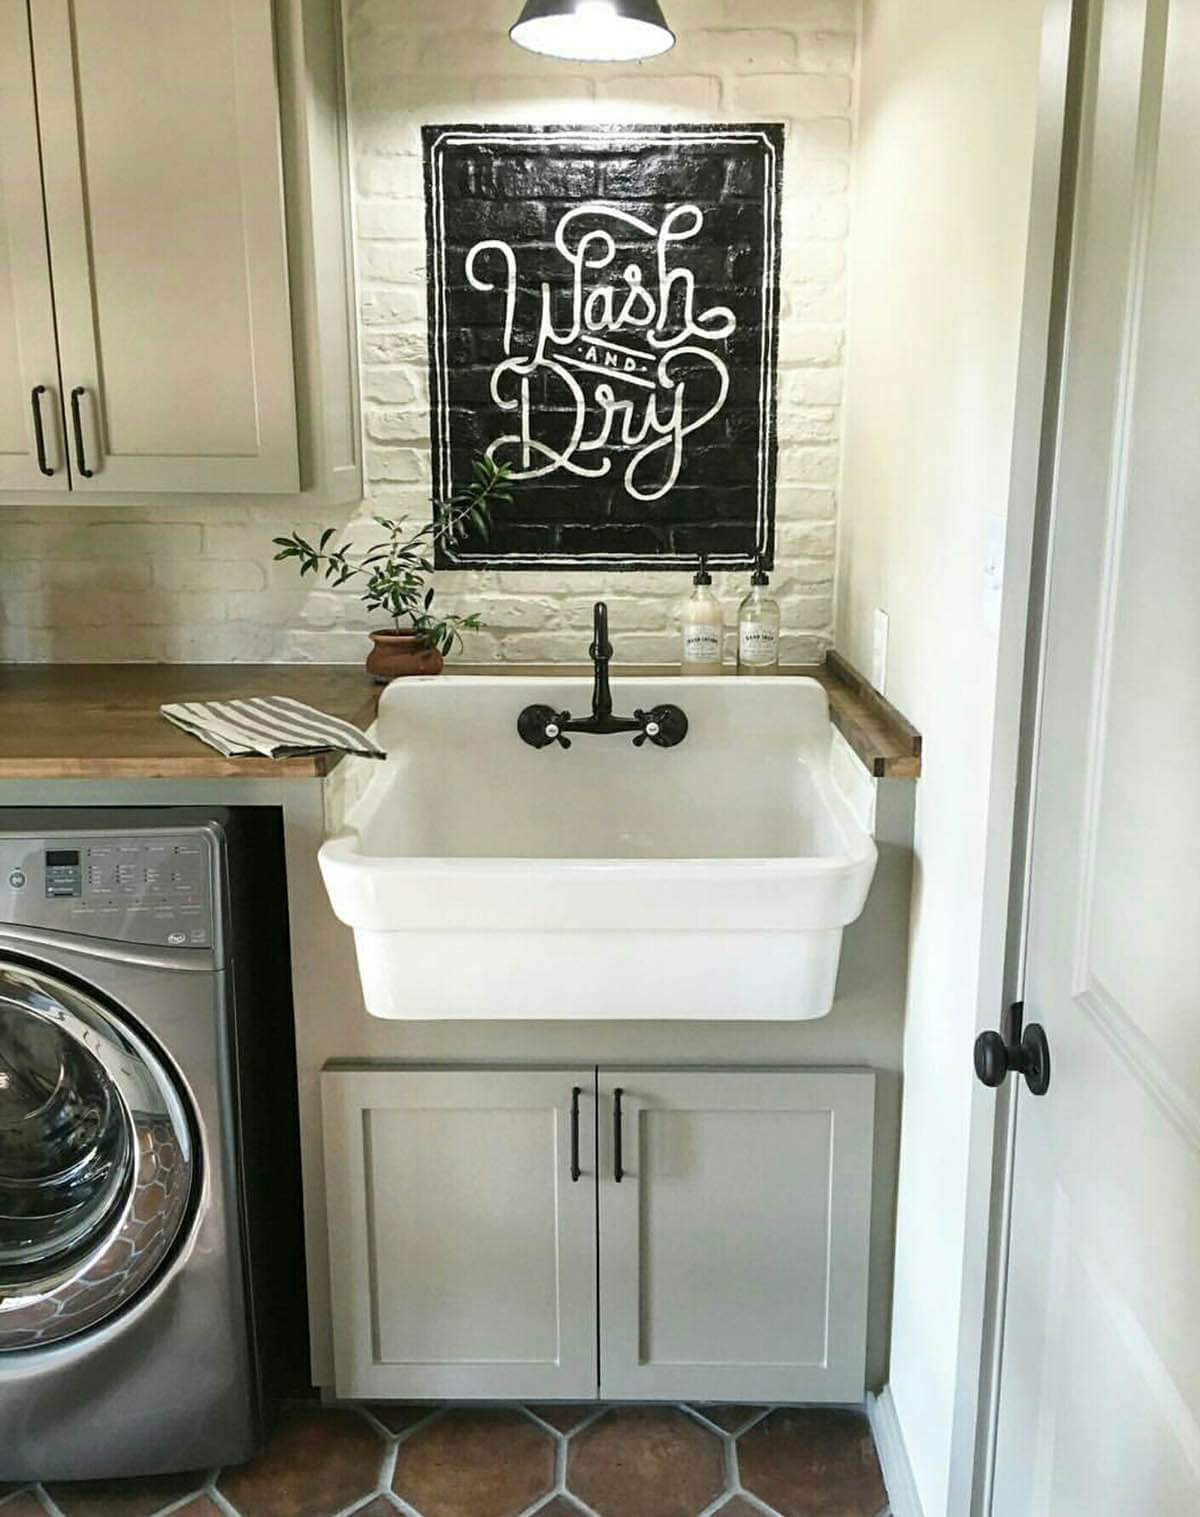 Best ideas about Vintage Laundry Room Decor . Save or Pin 25 Best Vintage Laundry Room Decor Ideas and Designs for 2019 Now.